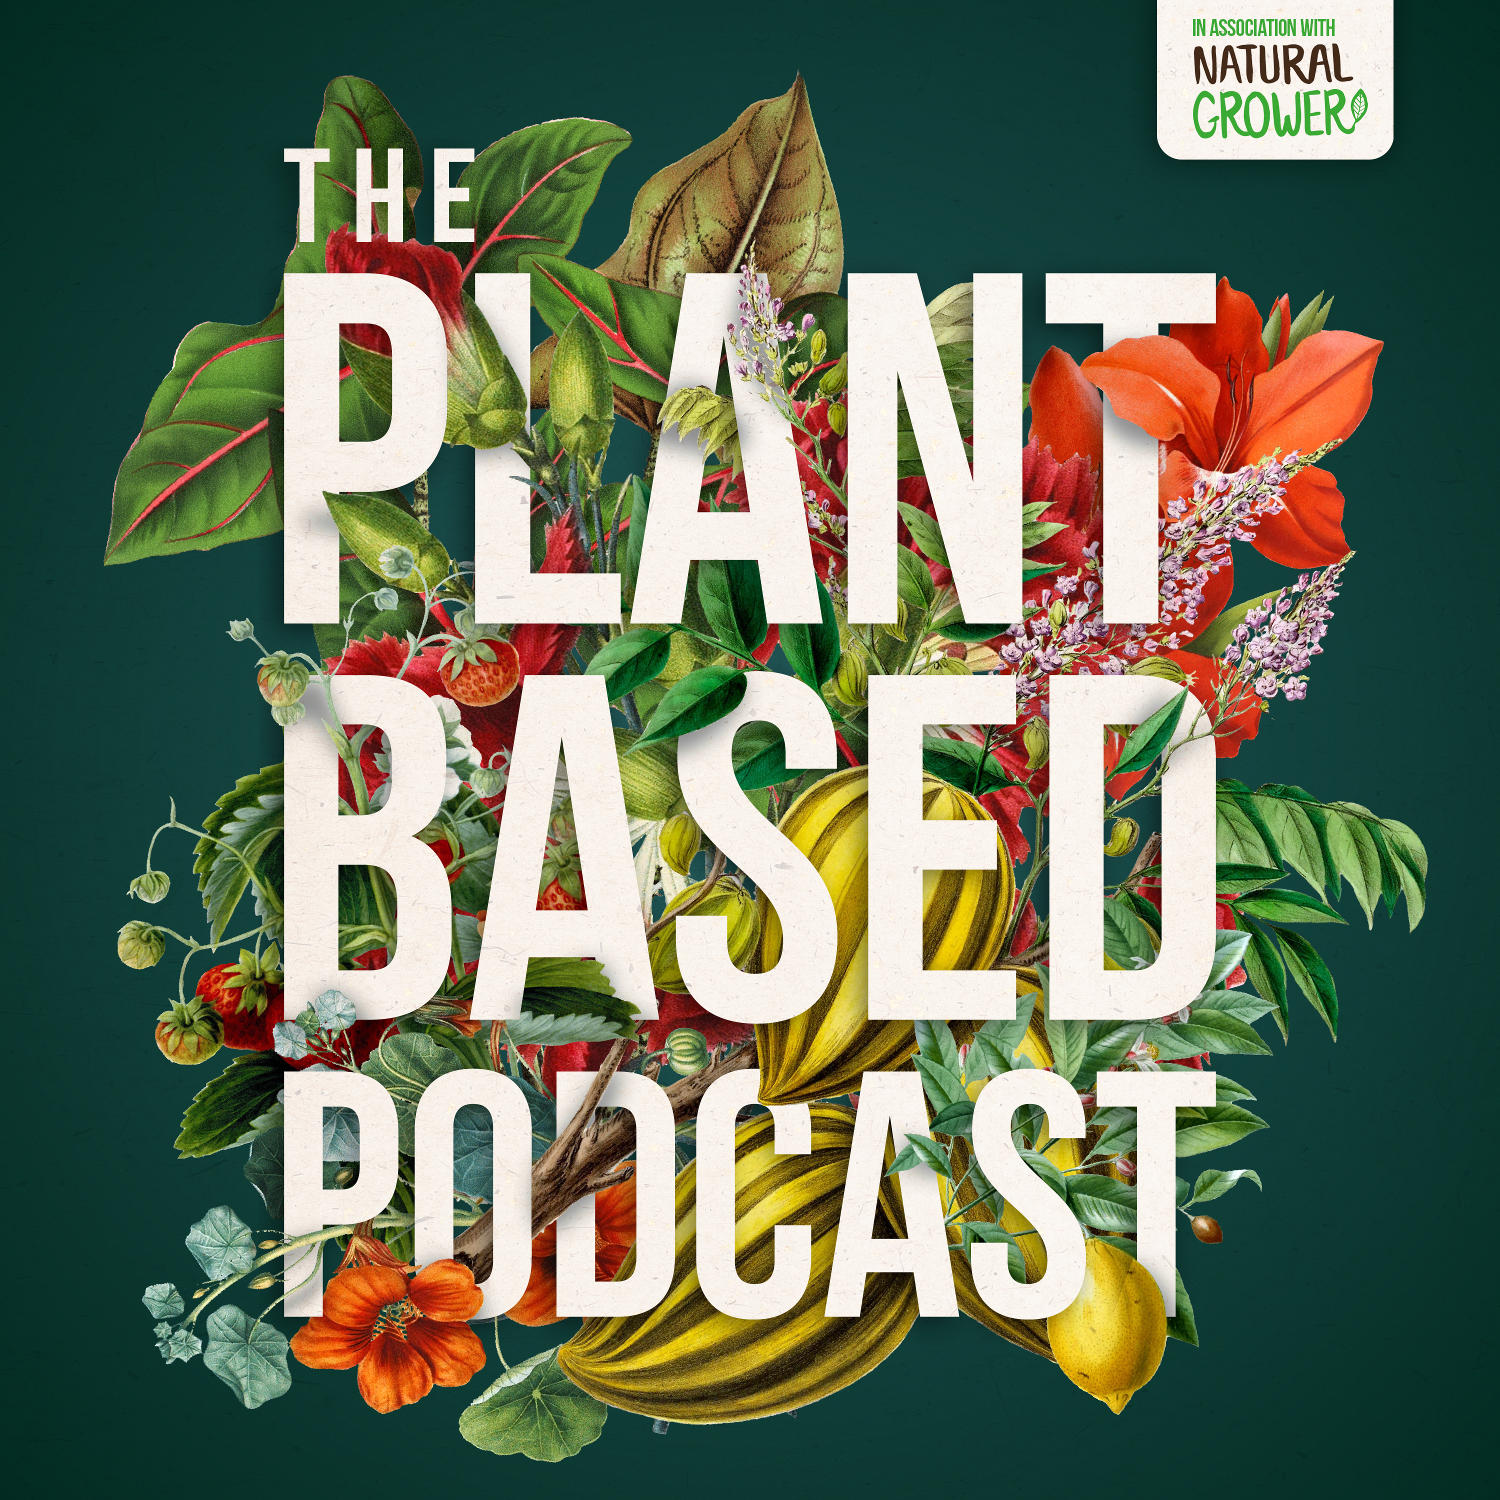 The Plant Based Podcast S3 - Inbetweeny Episode 5: Gardening Tips and Best Plants for Beginners